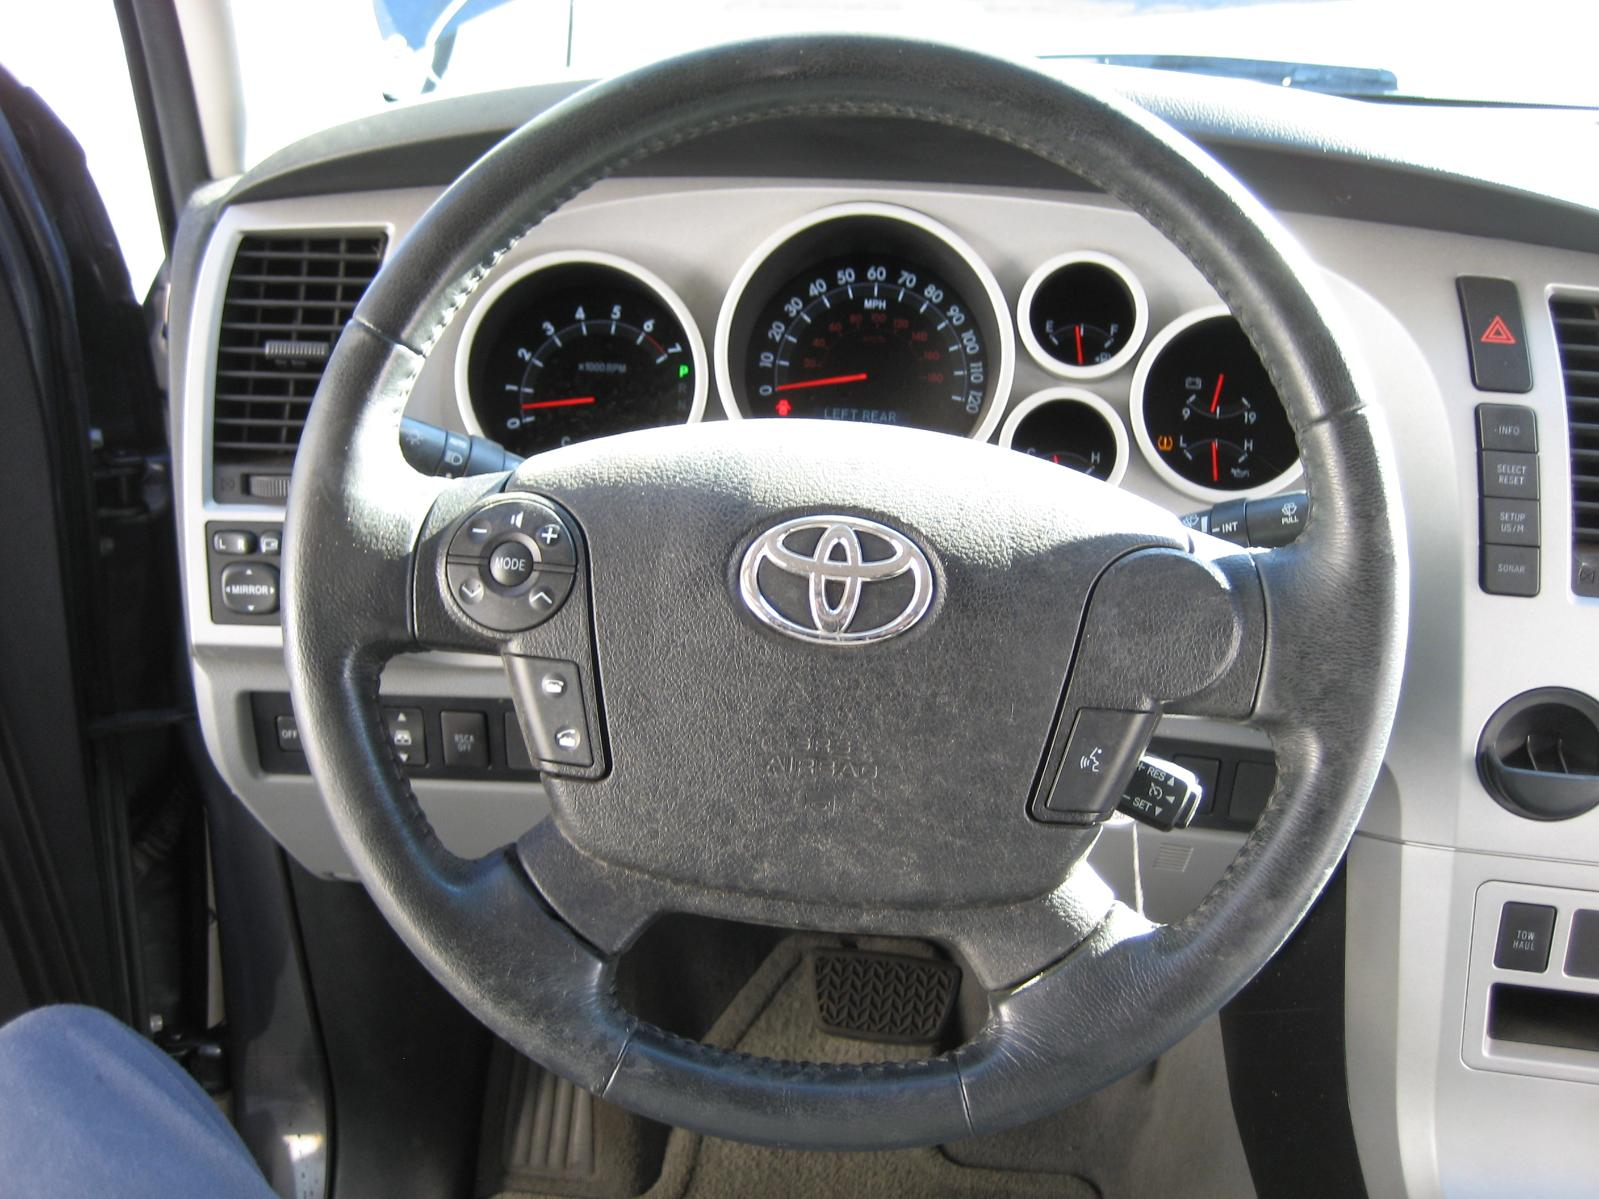 Used Steering Column For Sale For A 2007 Toyota Tundra